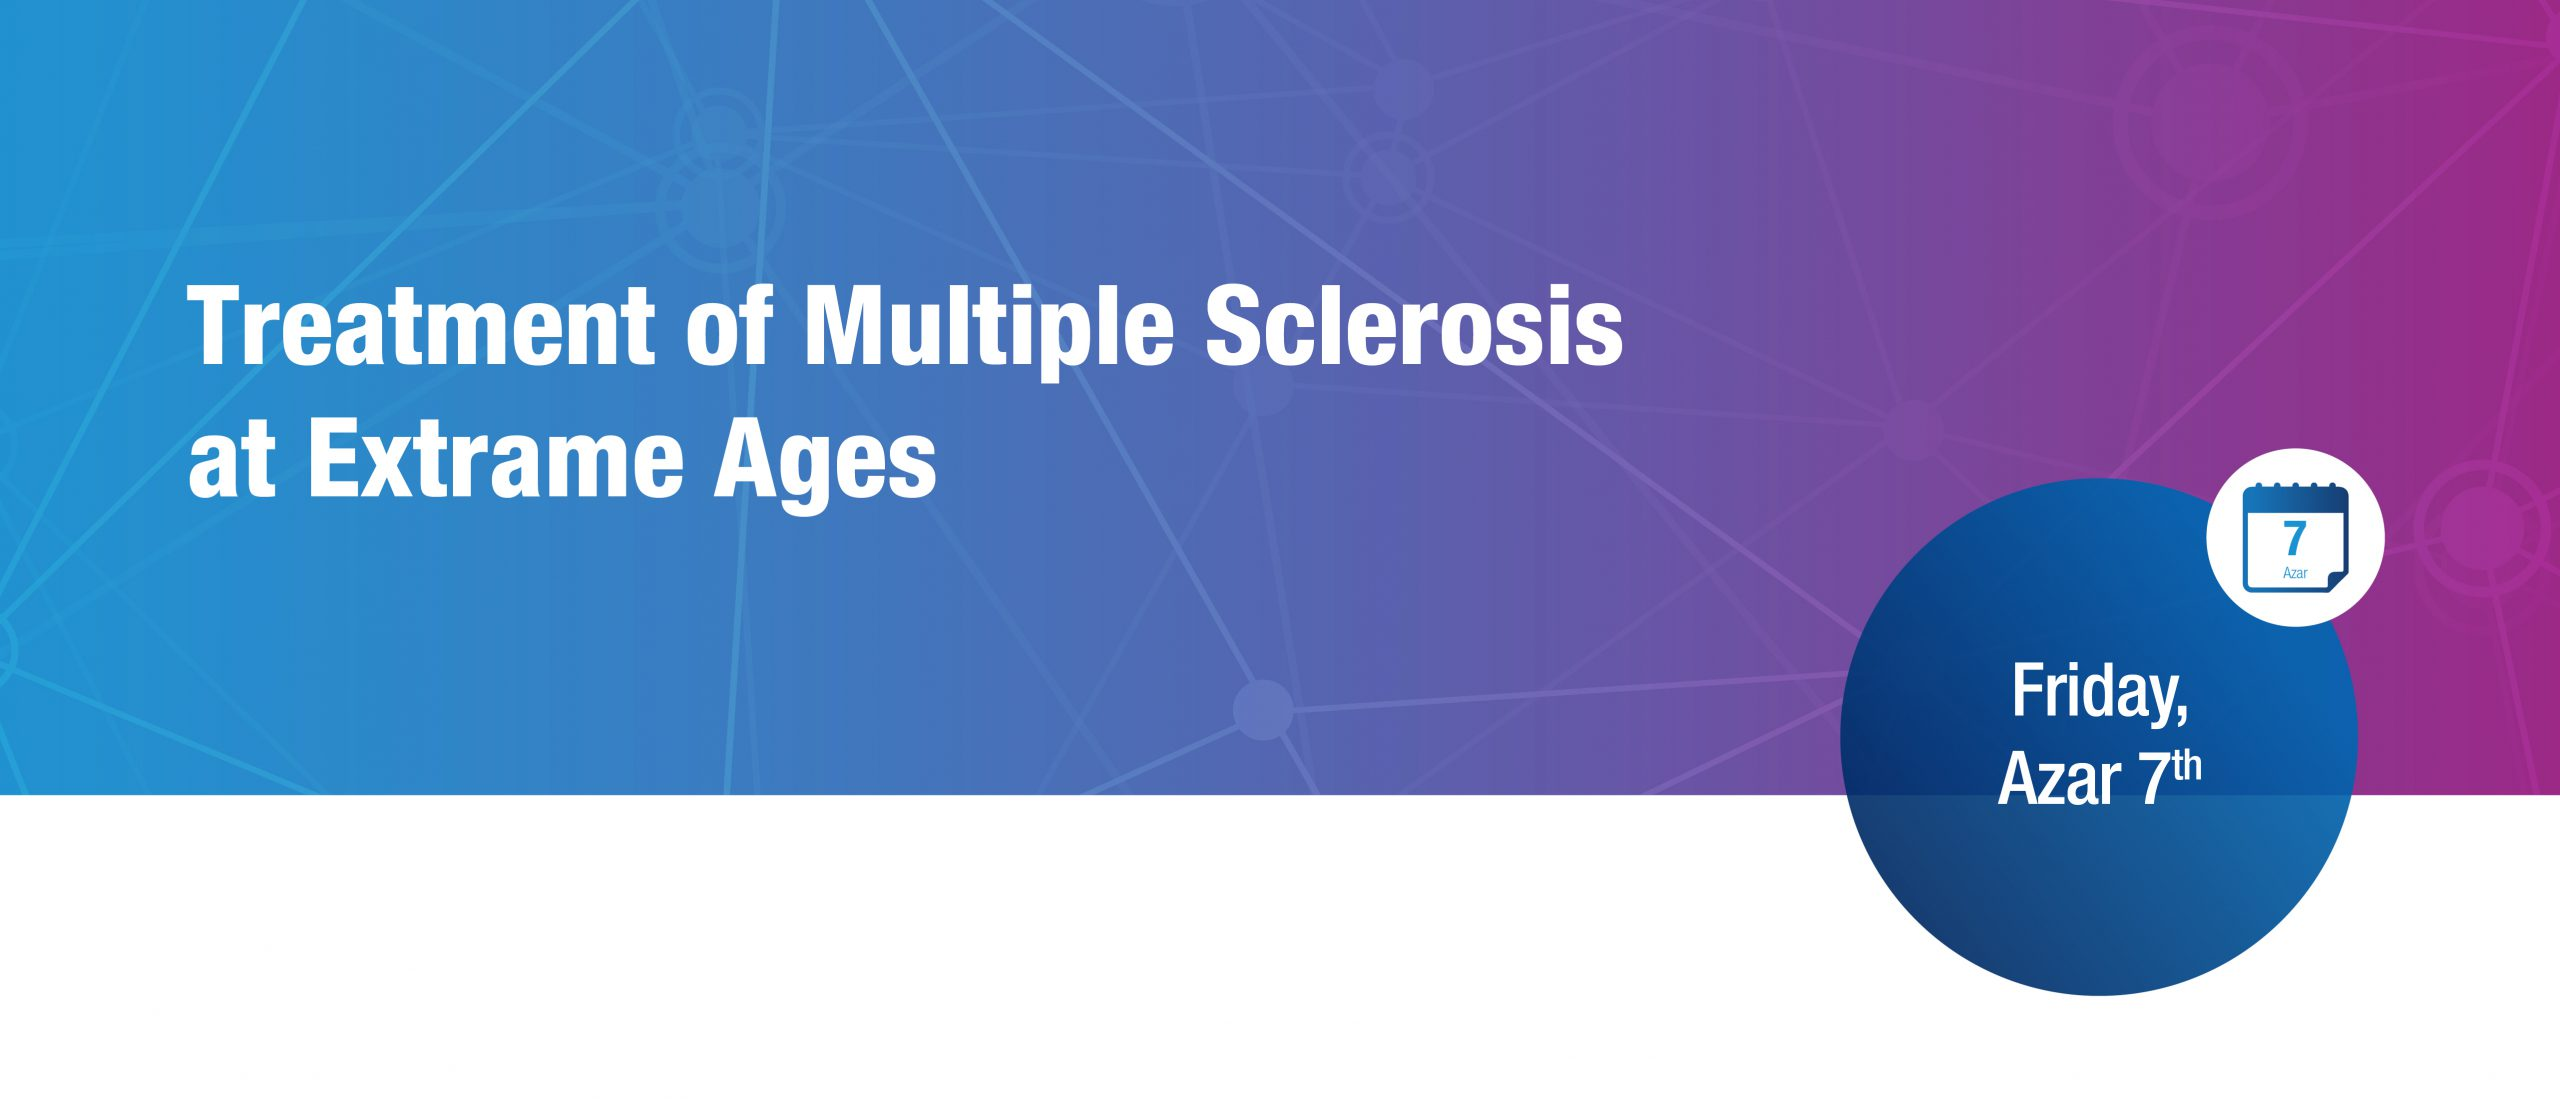 Treatment of Multiple Sclerosis at extreme ages